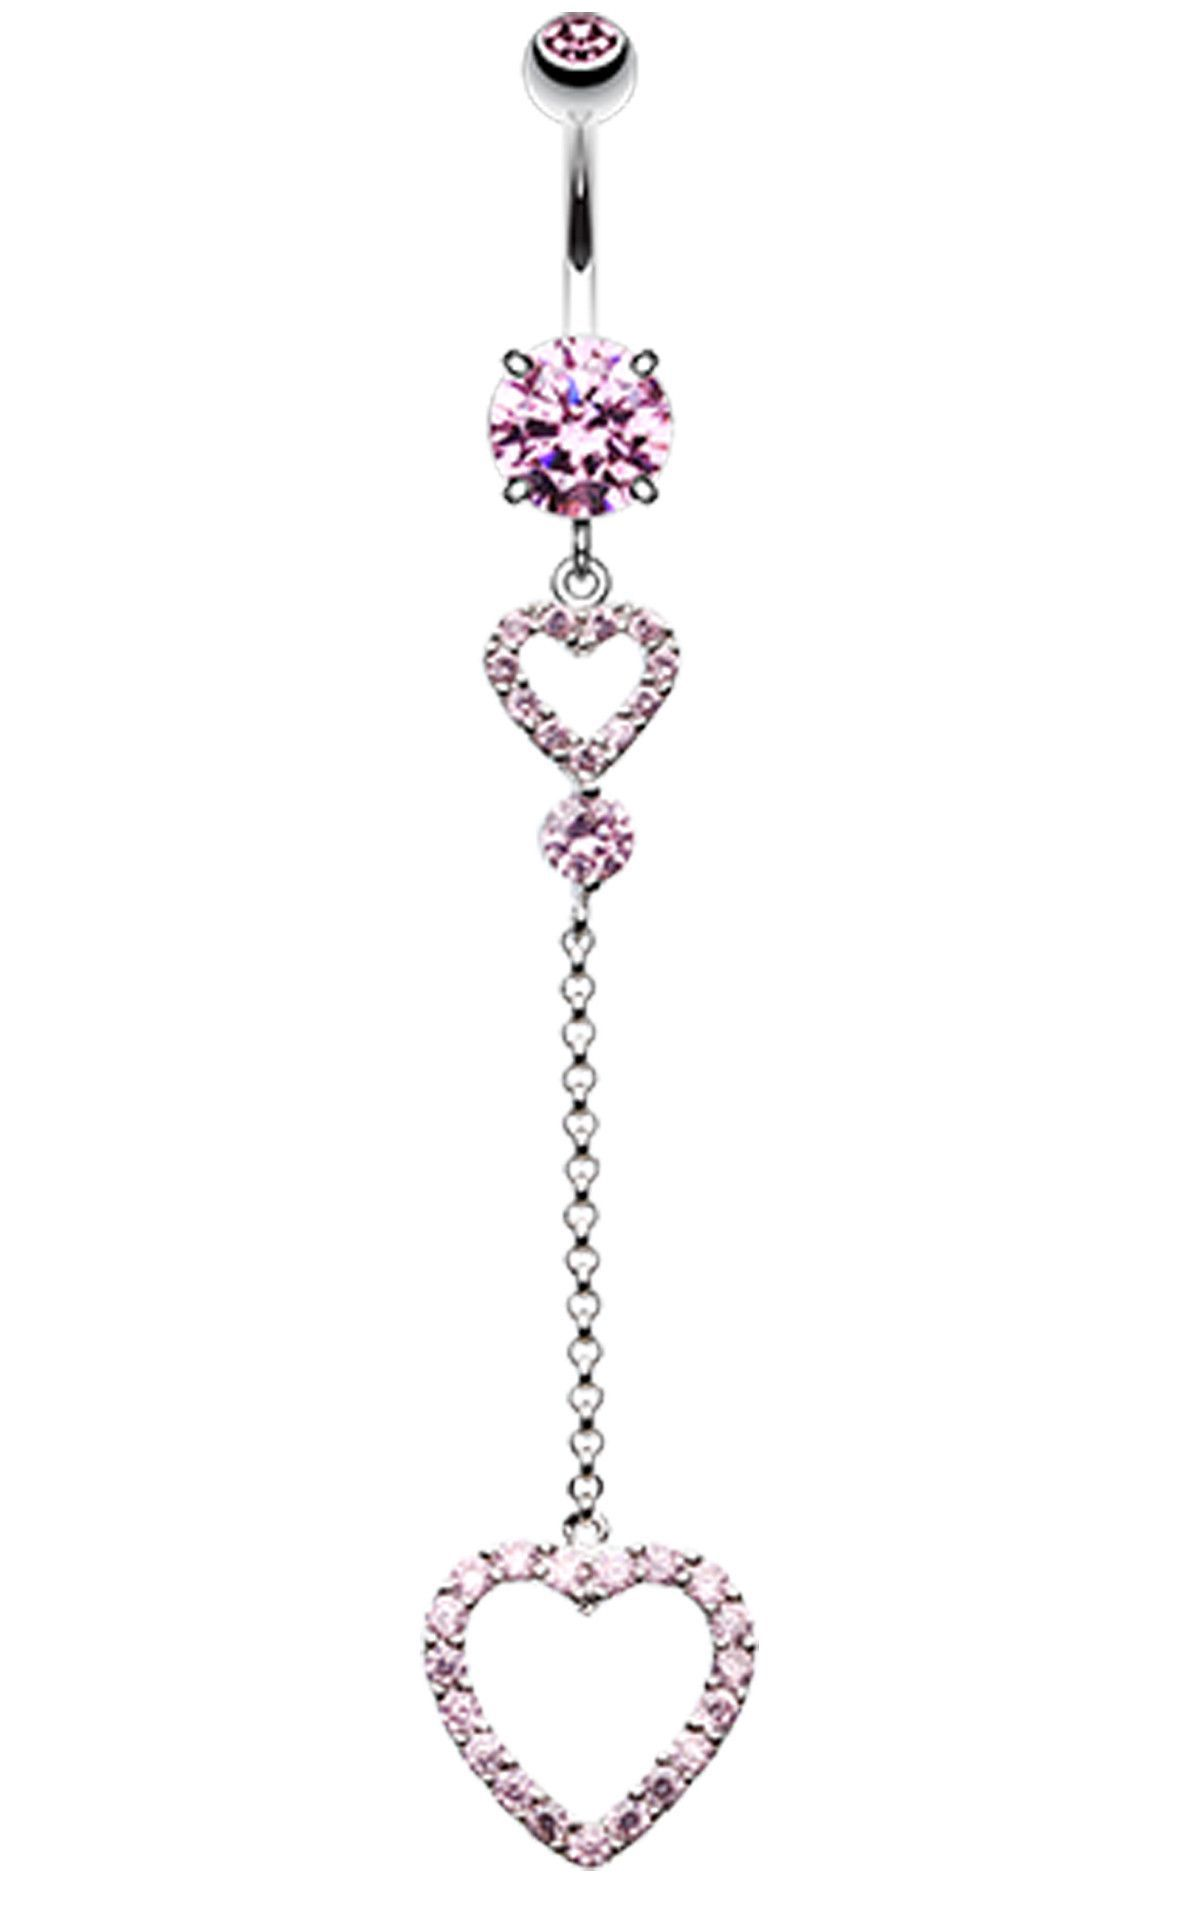 Piercing nose jewelry  Luscious Double Hearts Belly Button Ring  Belly button Ring and